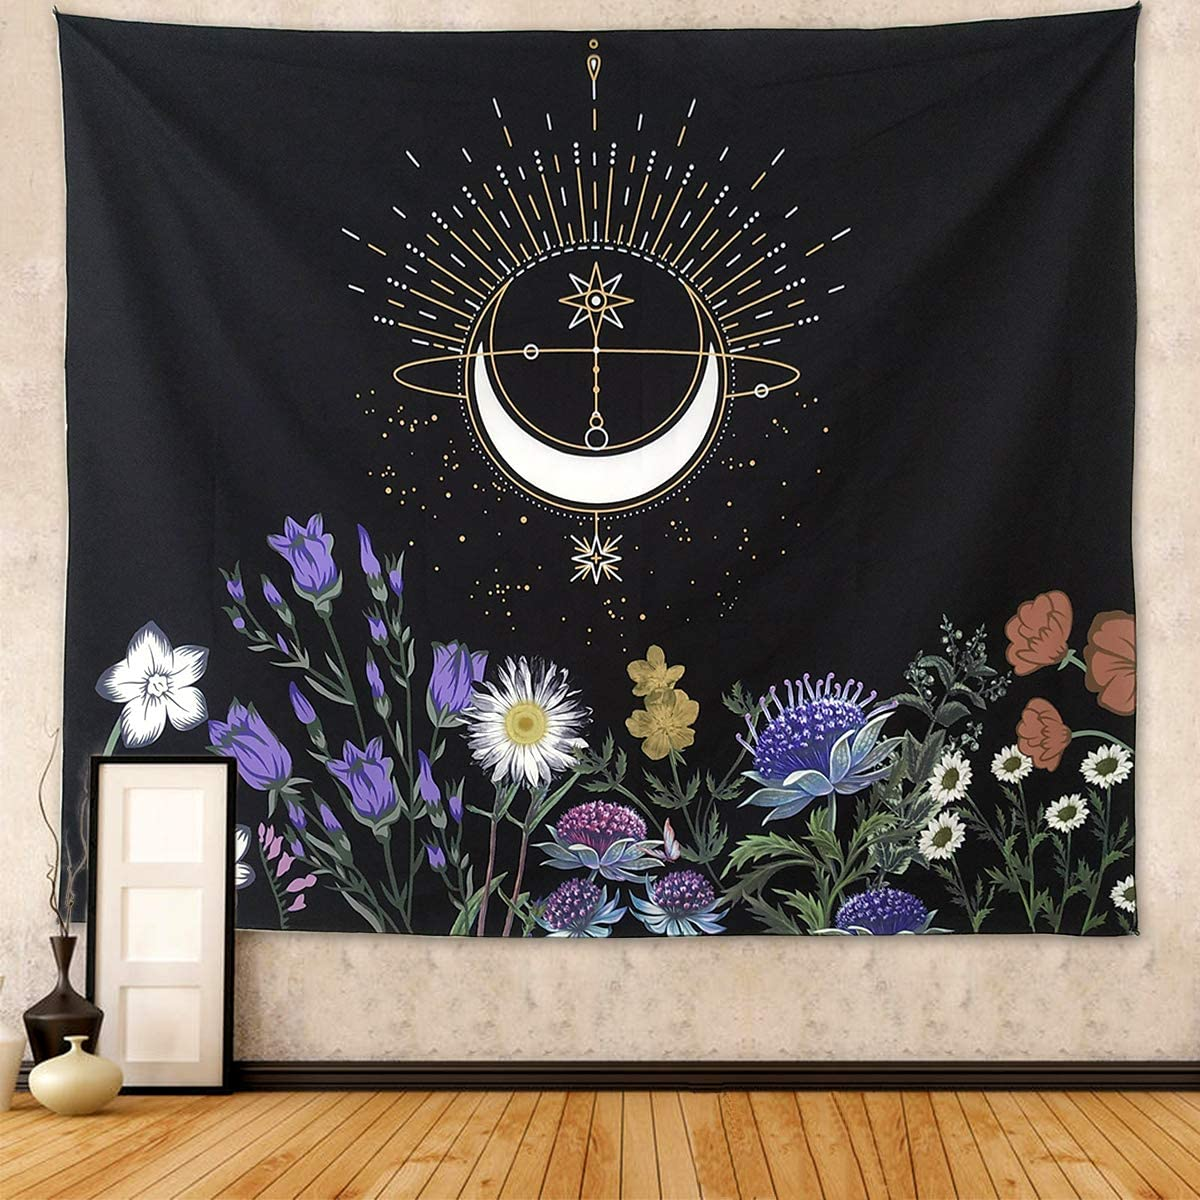 """NASKY Floral Tapestry Moon Flowers Tapestry Wall Hanging Colorful Plants Wall Tapestry Vintage Black and White Tapestry for Bedroom Wall Hanging for Meditation(Flower, 70.9"""" X 90.6""""-(180x230cm))"""